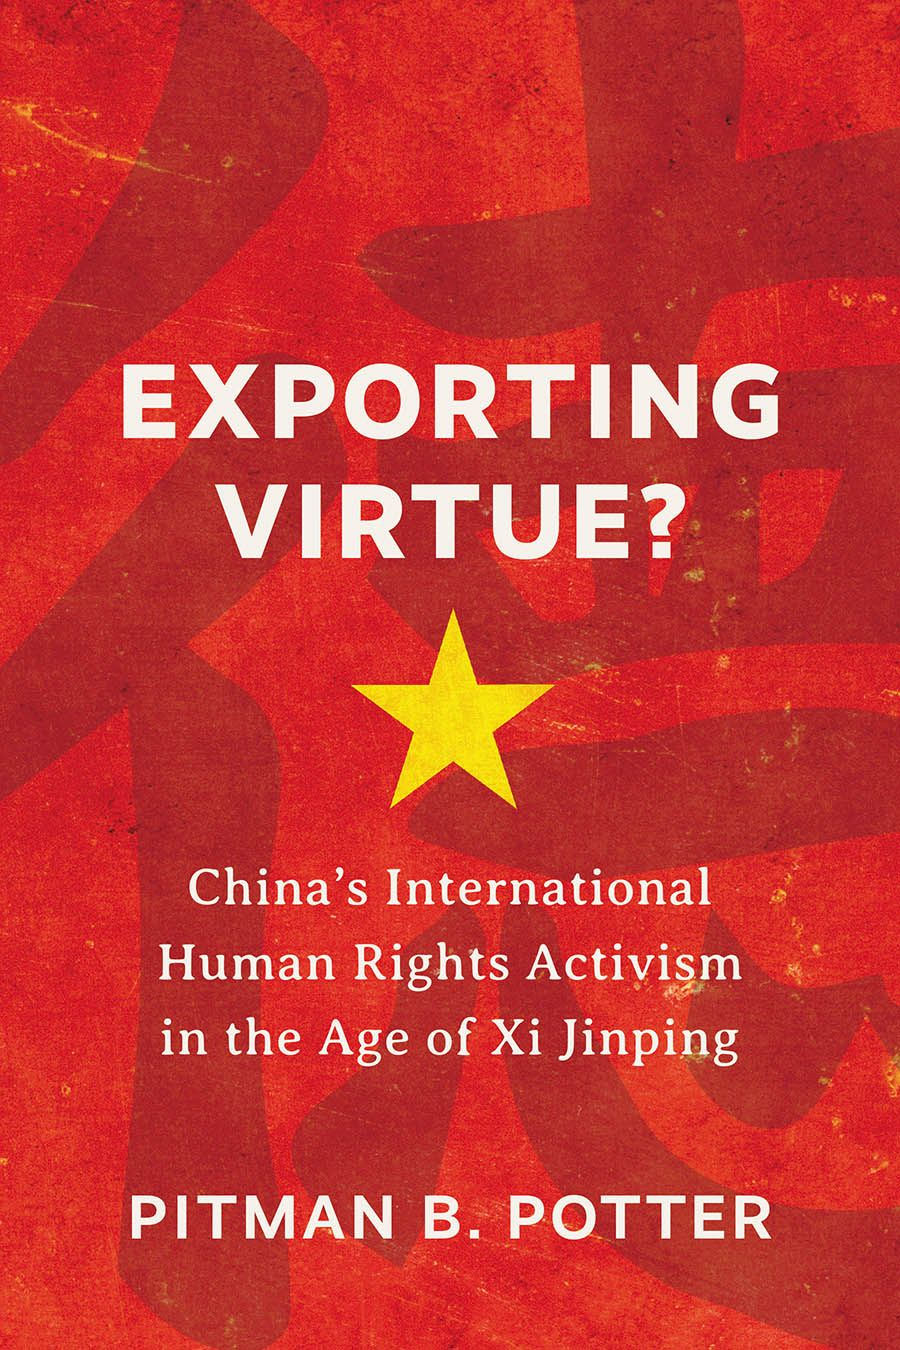 Exporting Virtue?: China's International Human Rights Activism in the Age of Xi Jinping